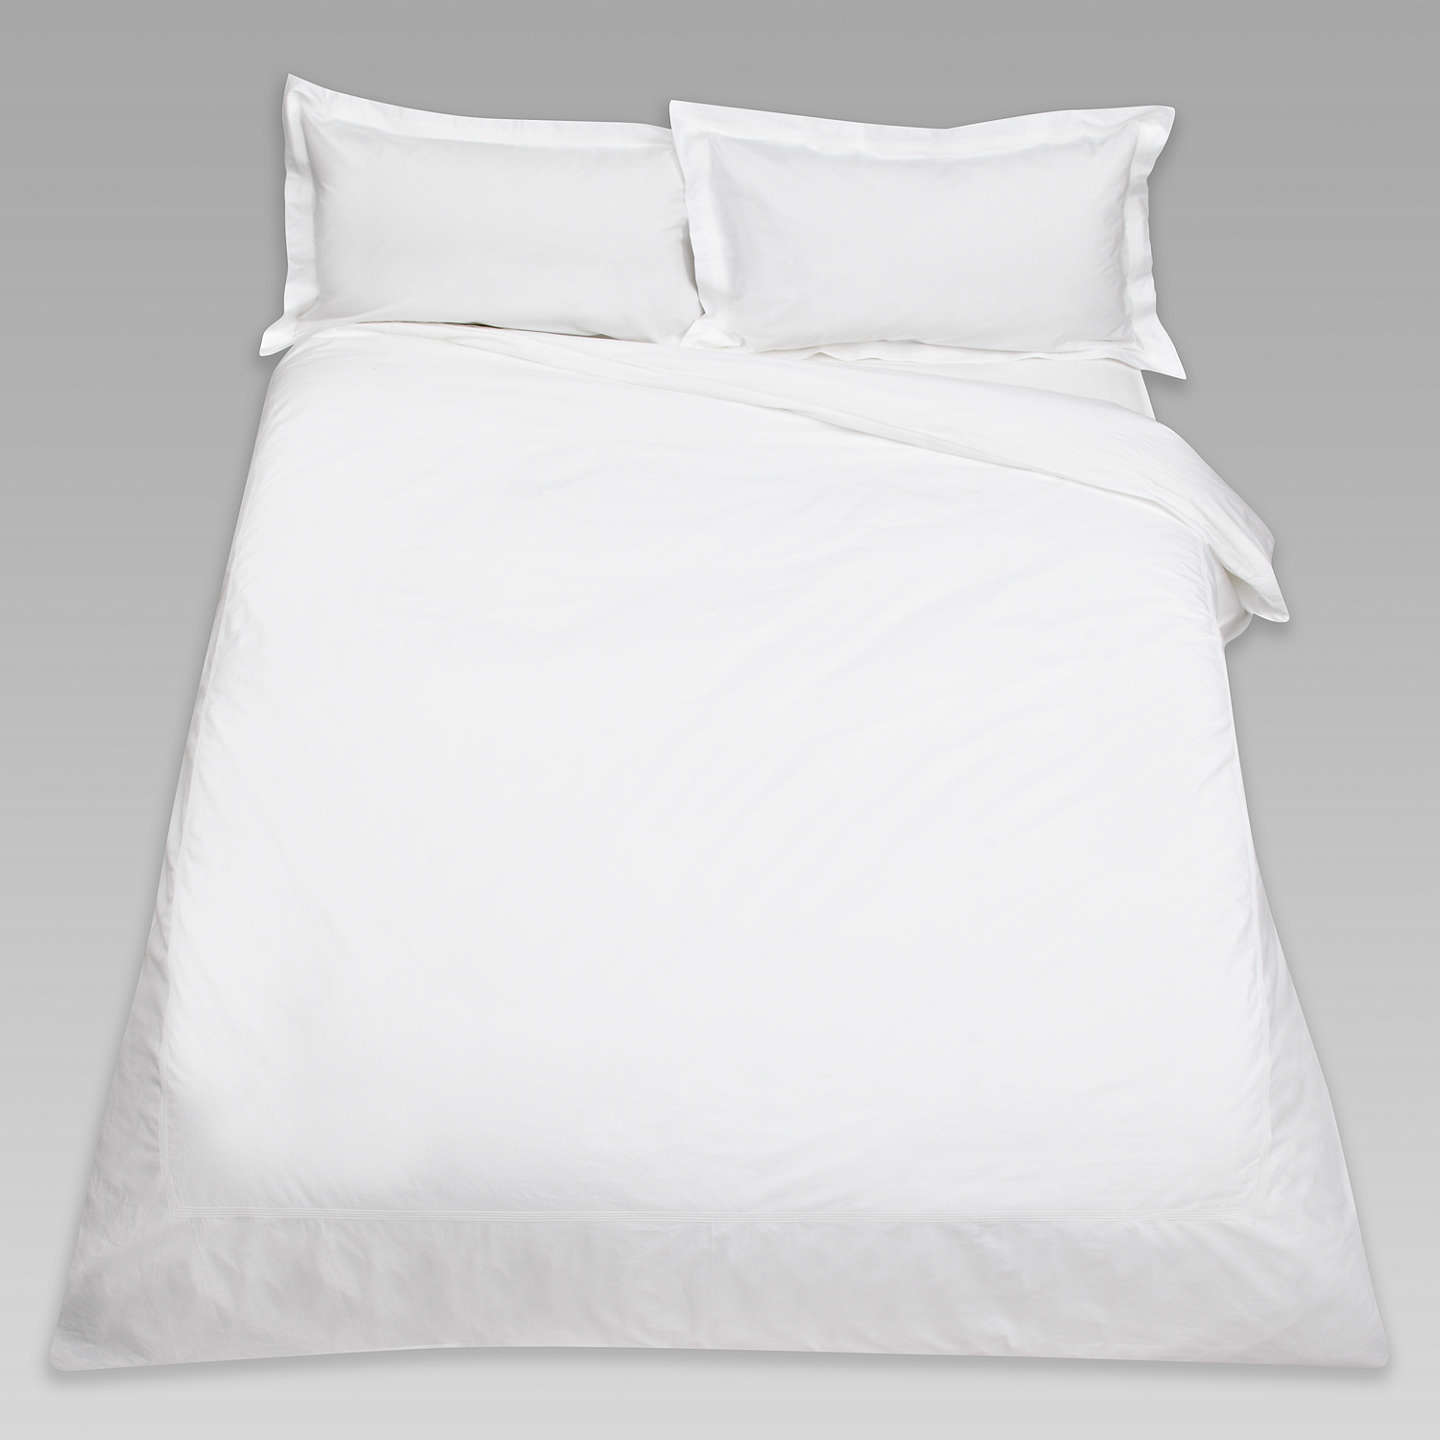 BuyPeter Reed Egyptian Cotton 4 Row Cord Oxford Pillowcase, White Online at johnlewis.com